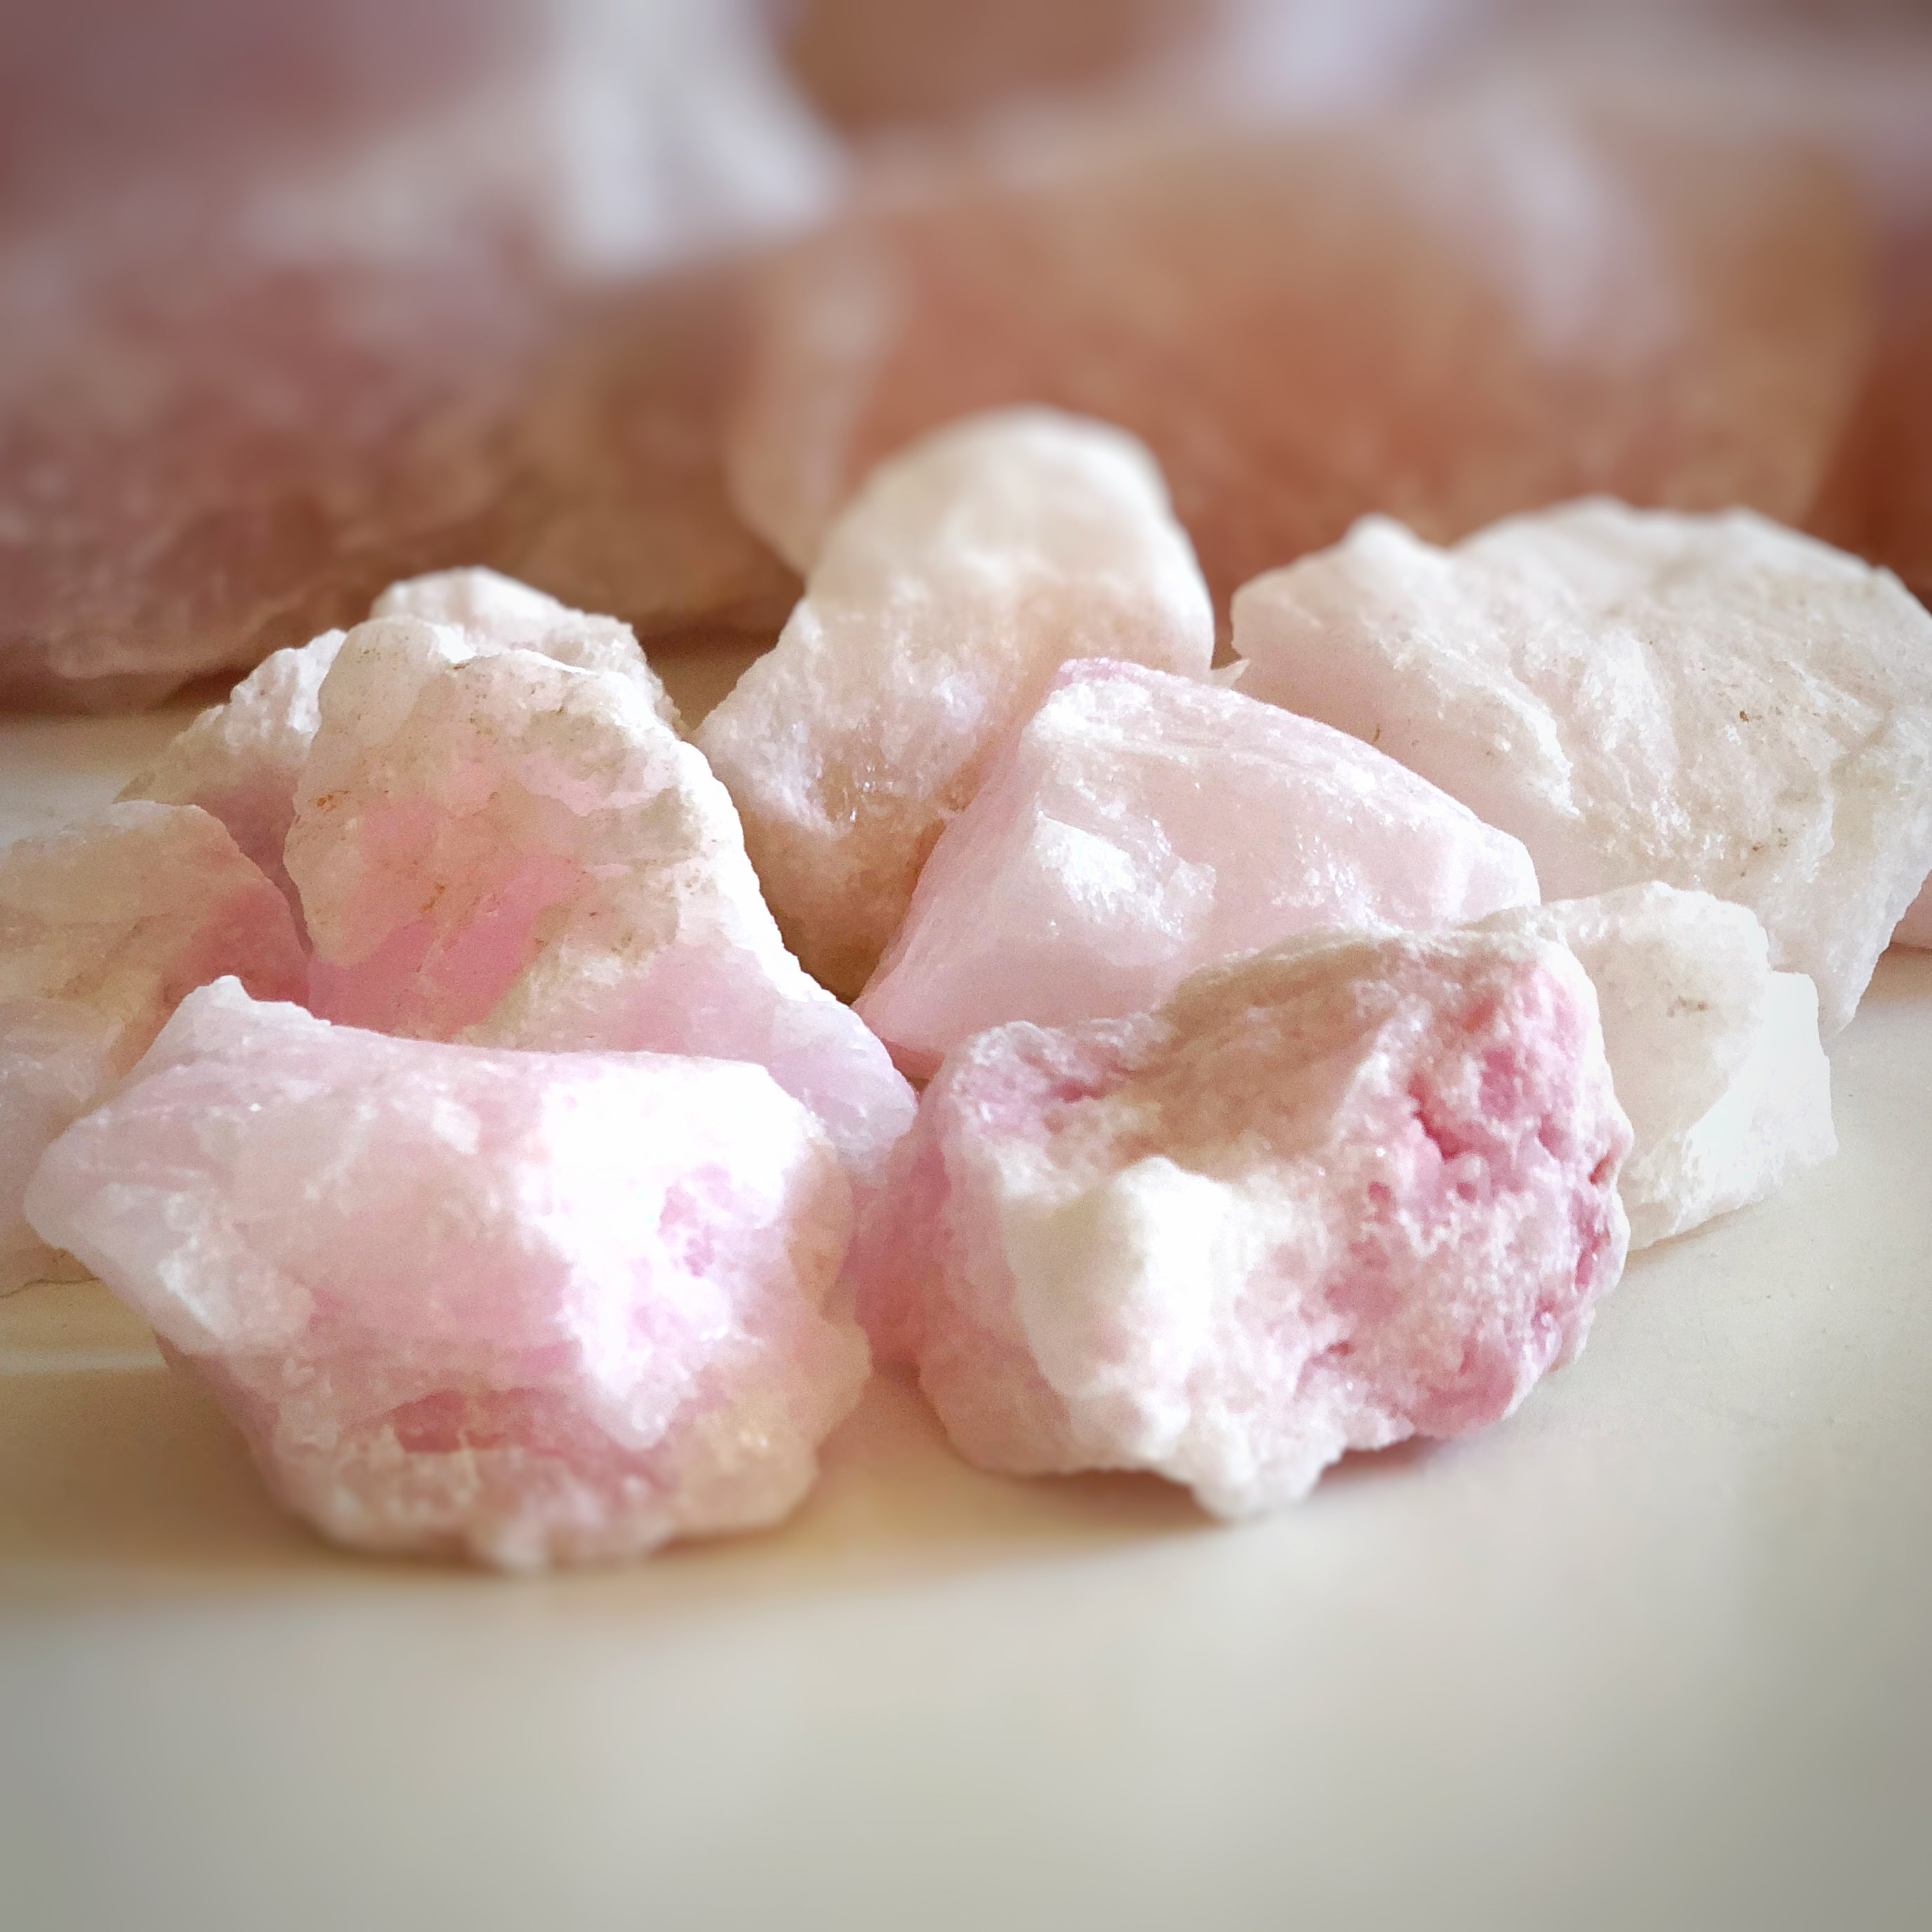 LITTLE PAPER LANE CRYSTALS- Raw Pink Argonite $6